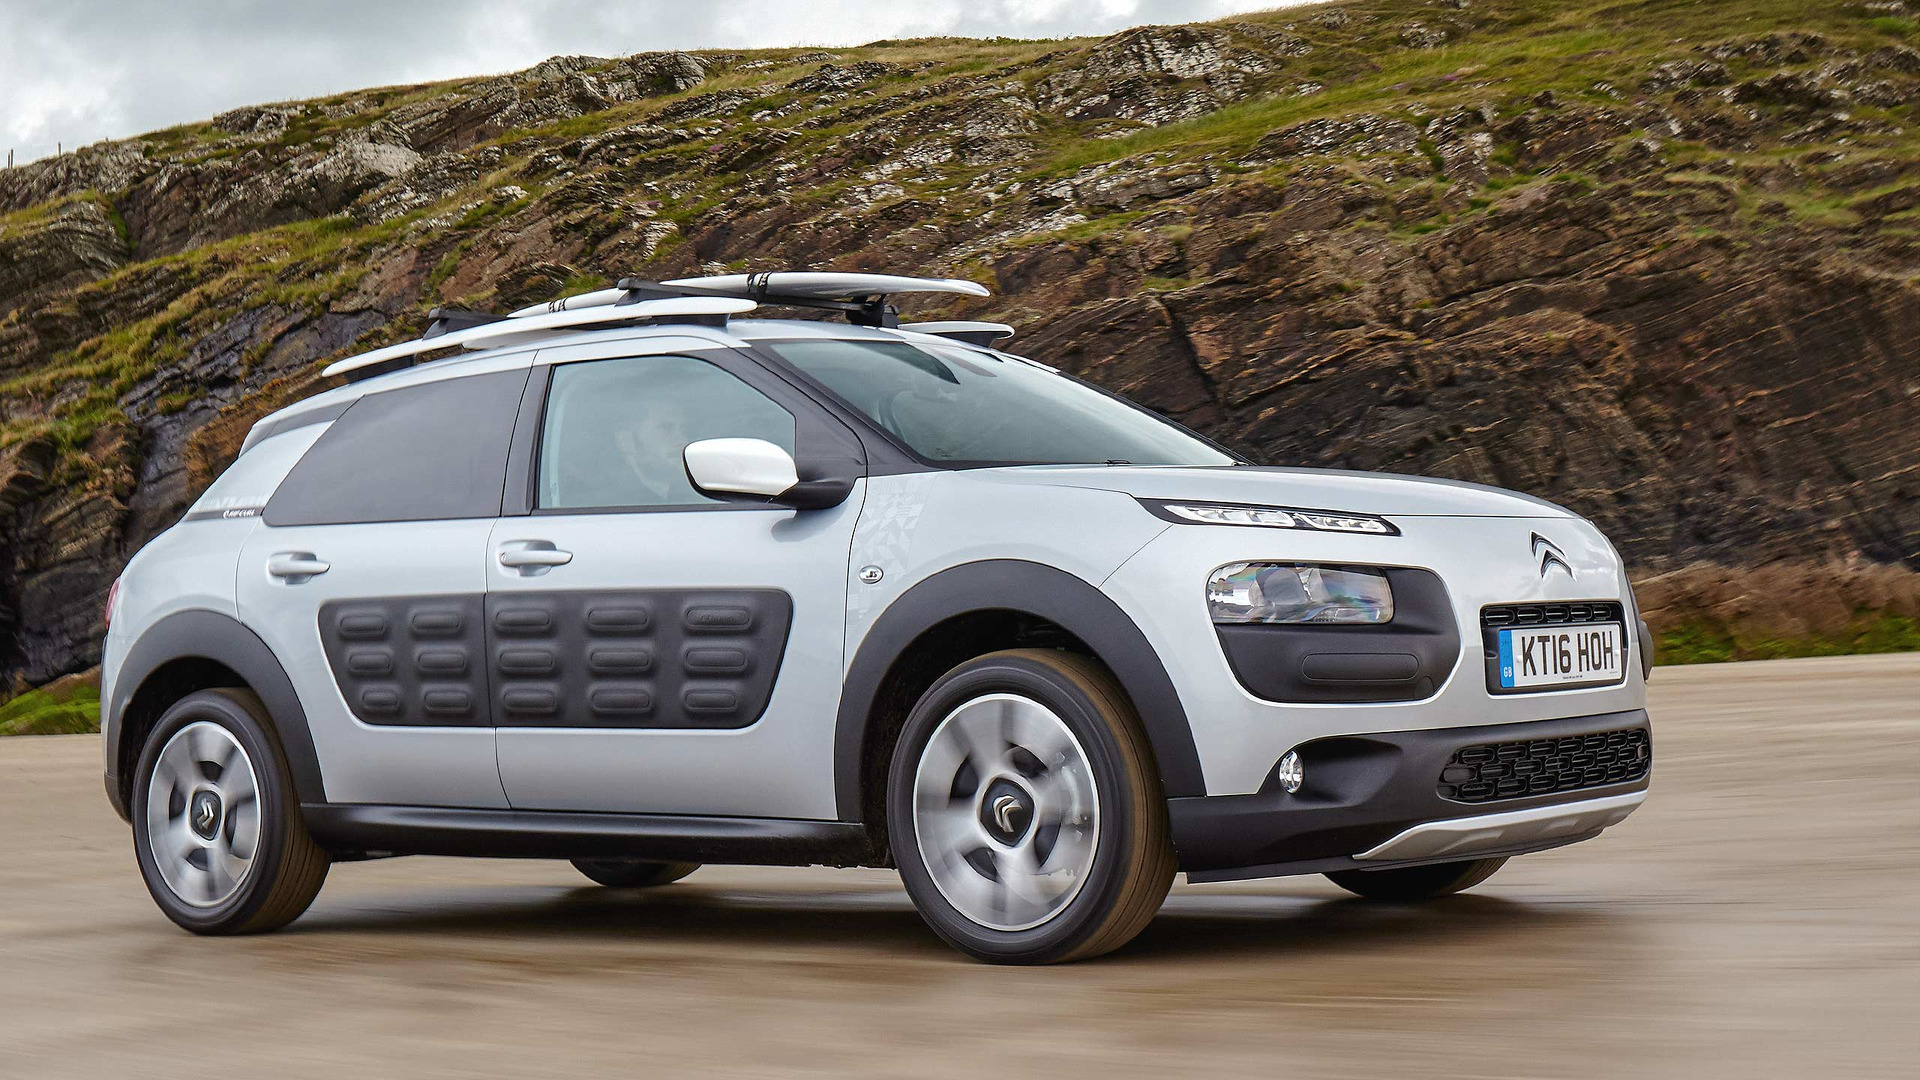 Citroen C4 Cactus >> Citroen To Kill Off The C4 Cactus After Just One Generation